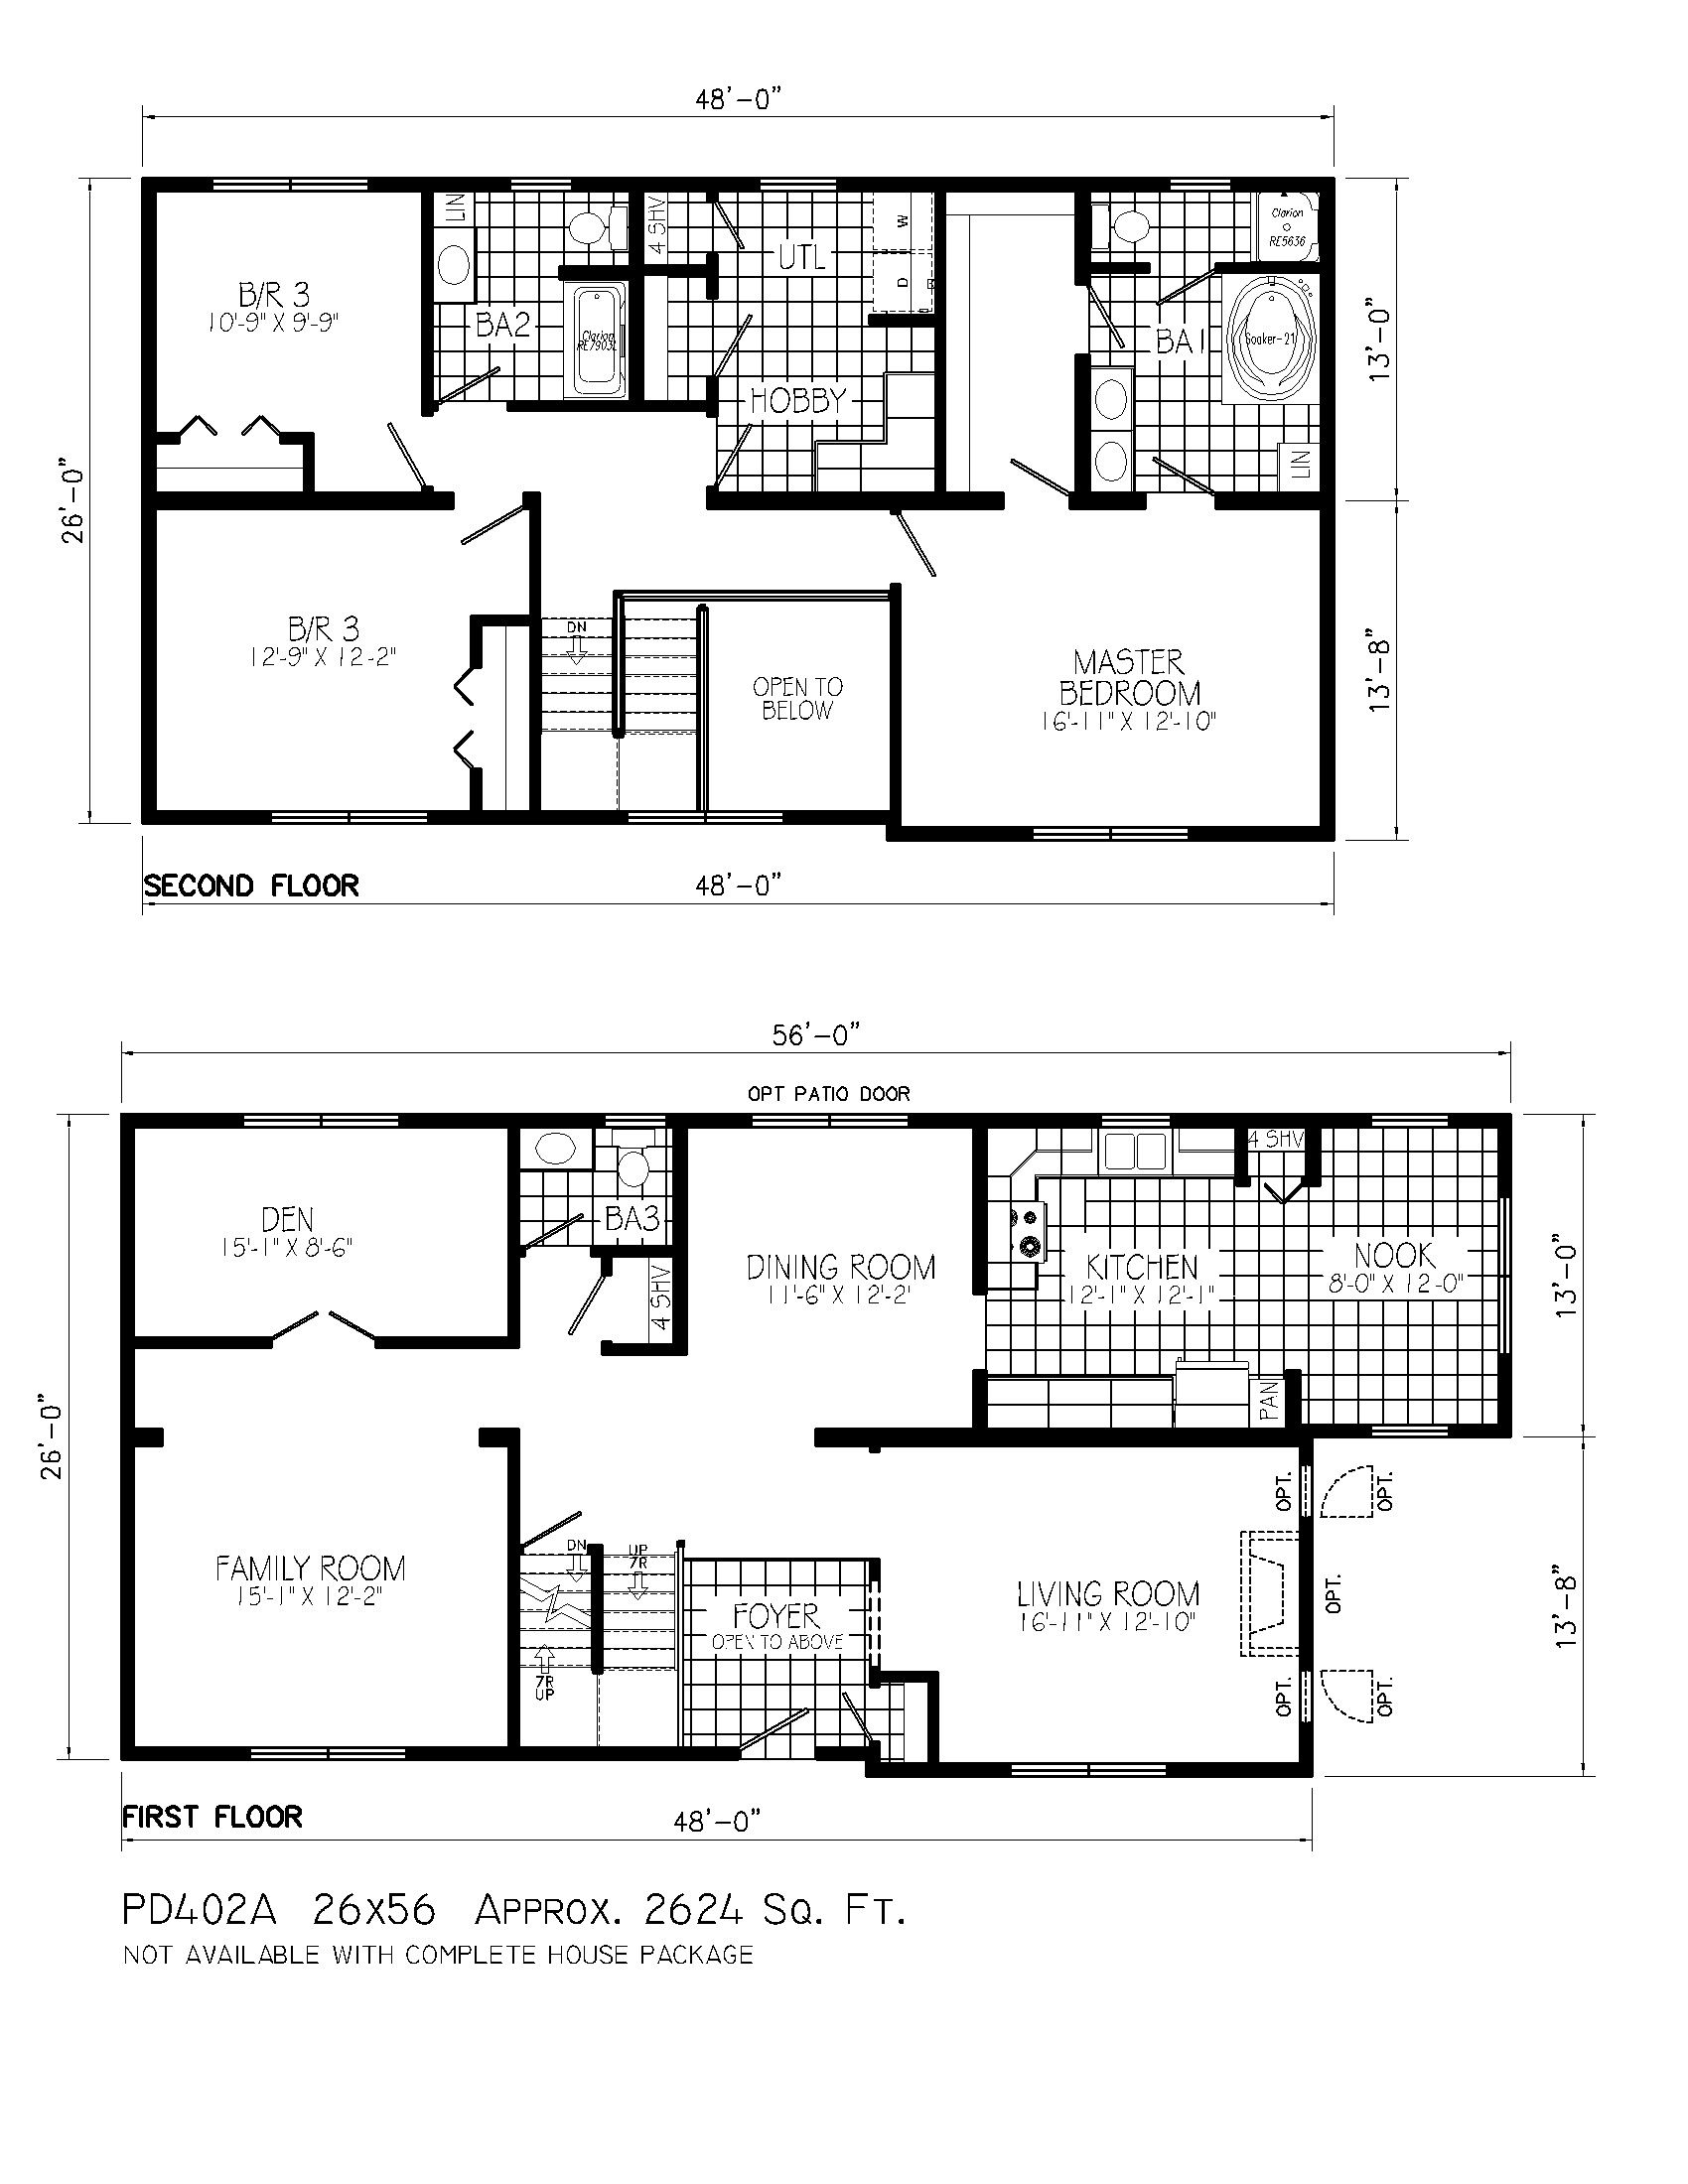 Small two story cabin floor plans with house under 1000 sq for Two story house floor plans free